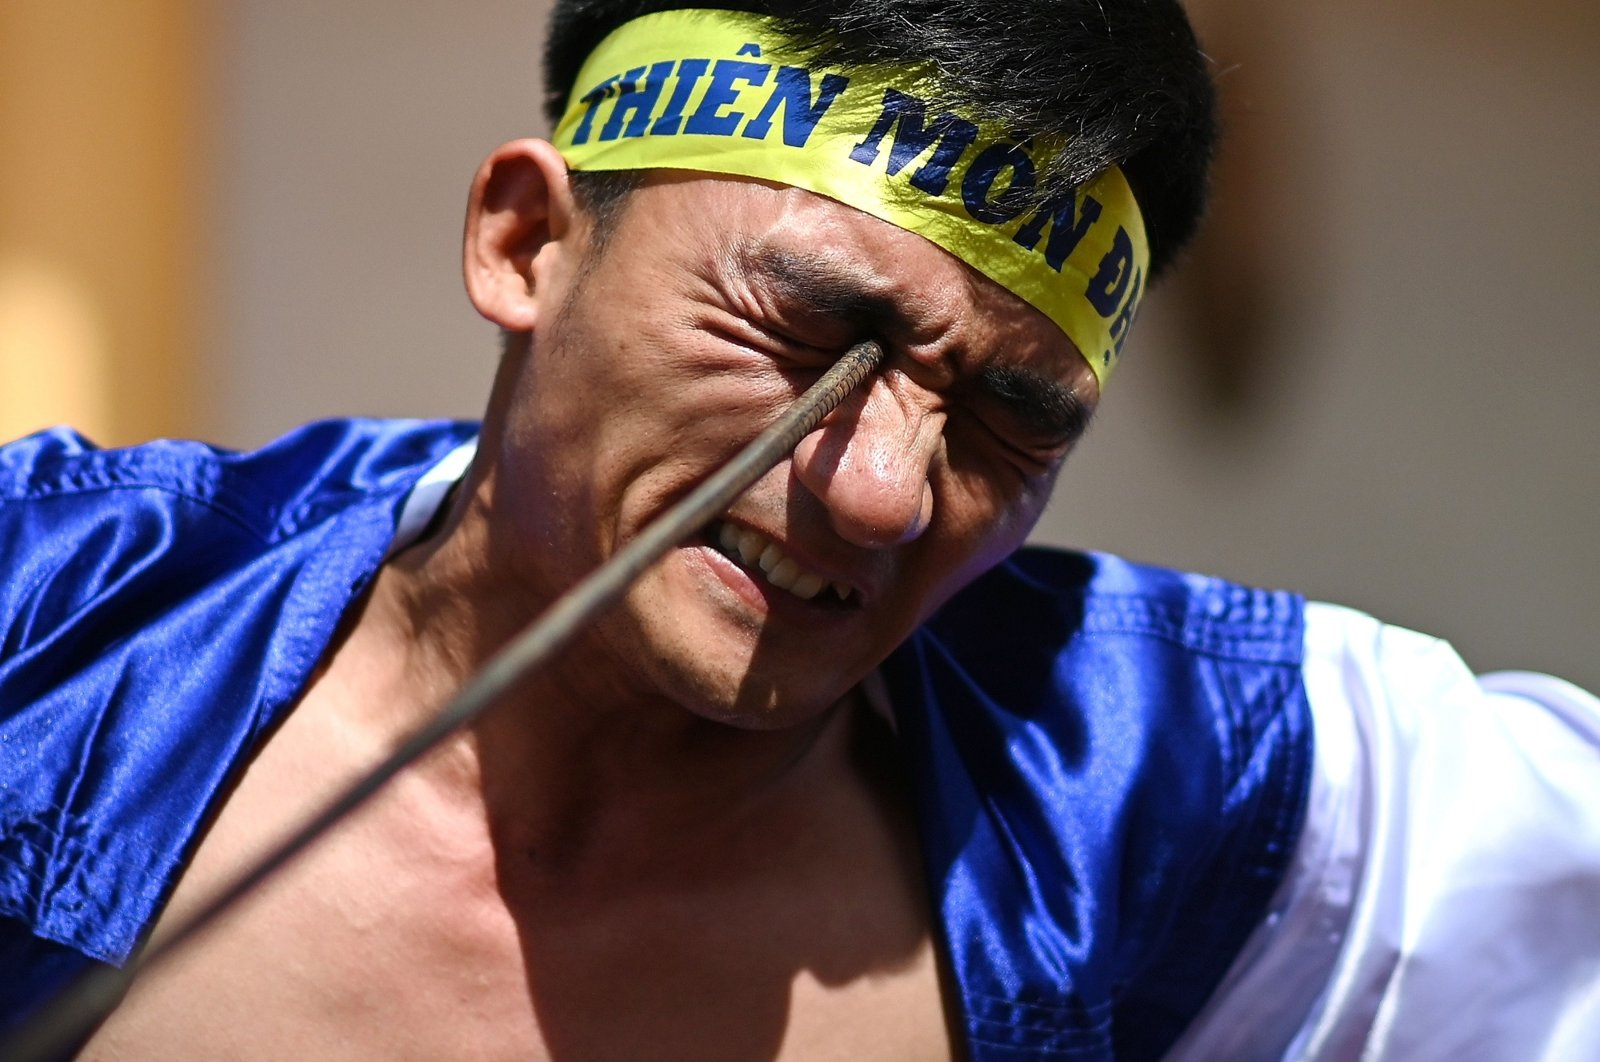 Le Van Thang, 28, a student of the centuries-old martial art of Thien Mon Dao, bends a construction rebar against his eye socket inside the Bach Linh temple compound at Du Xa Thuong village in Hanoi, Vietnam, June 7, 2020. (AFP Photo)